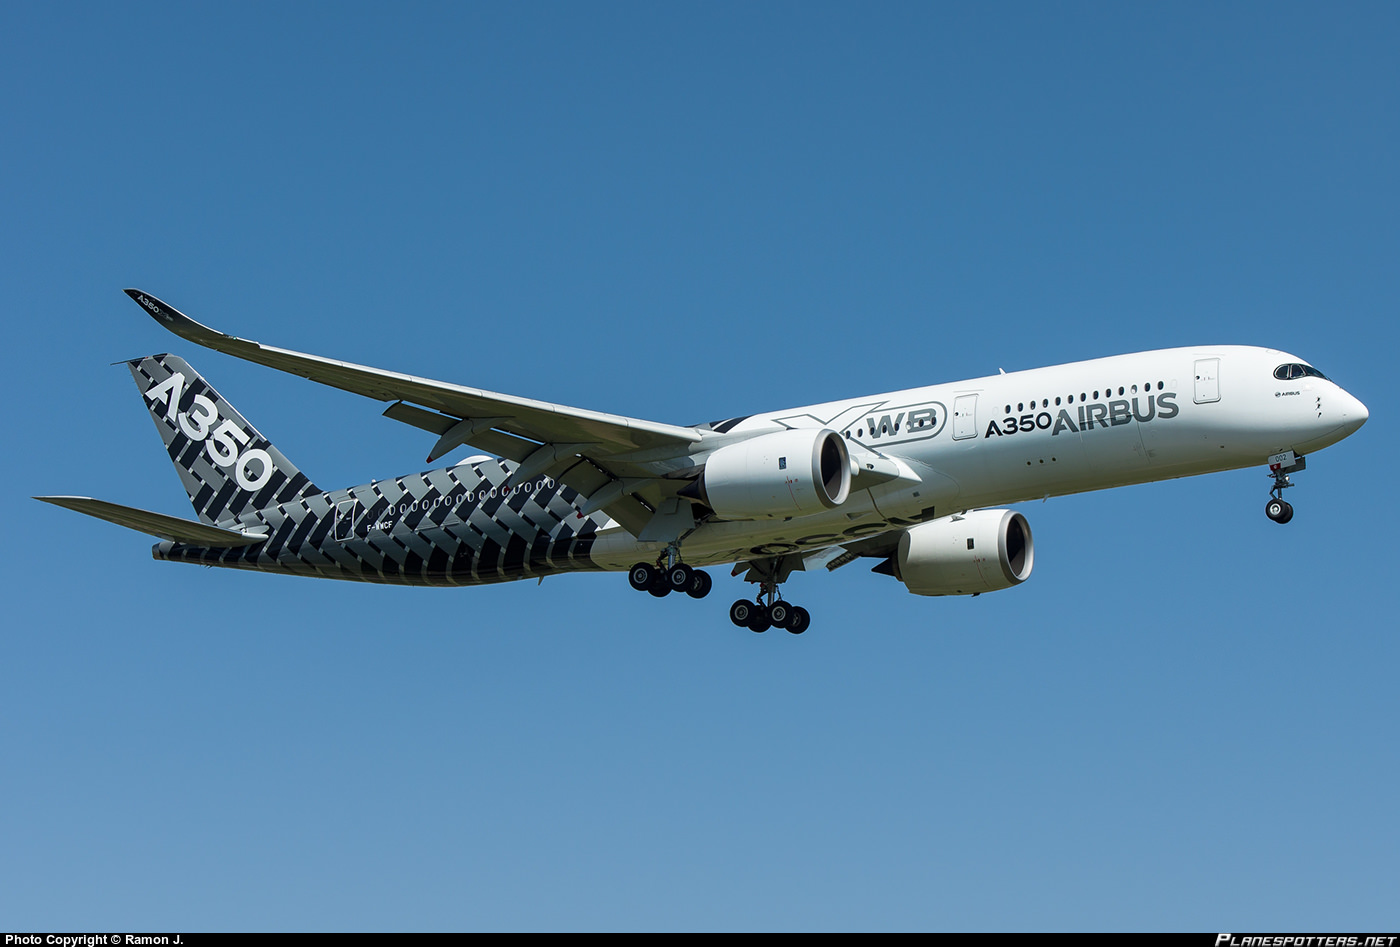 Airbus A350XWB, F-WWCF, MSN 002 is currently touring the Americas and will make a special appearance in Oshkosh this year.